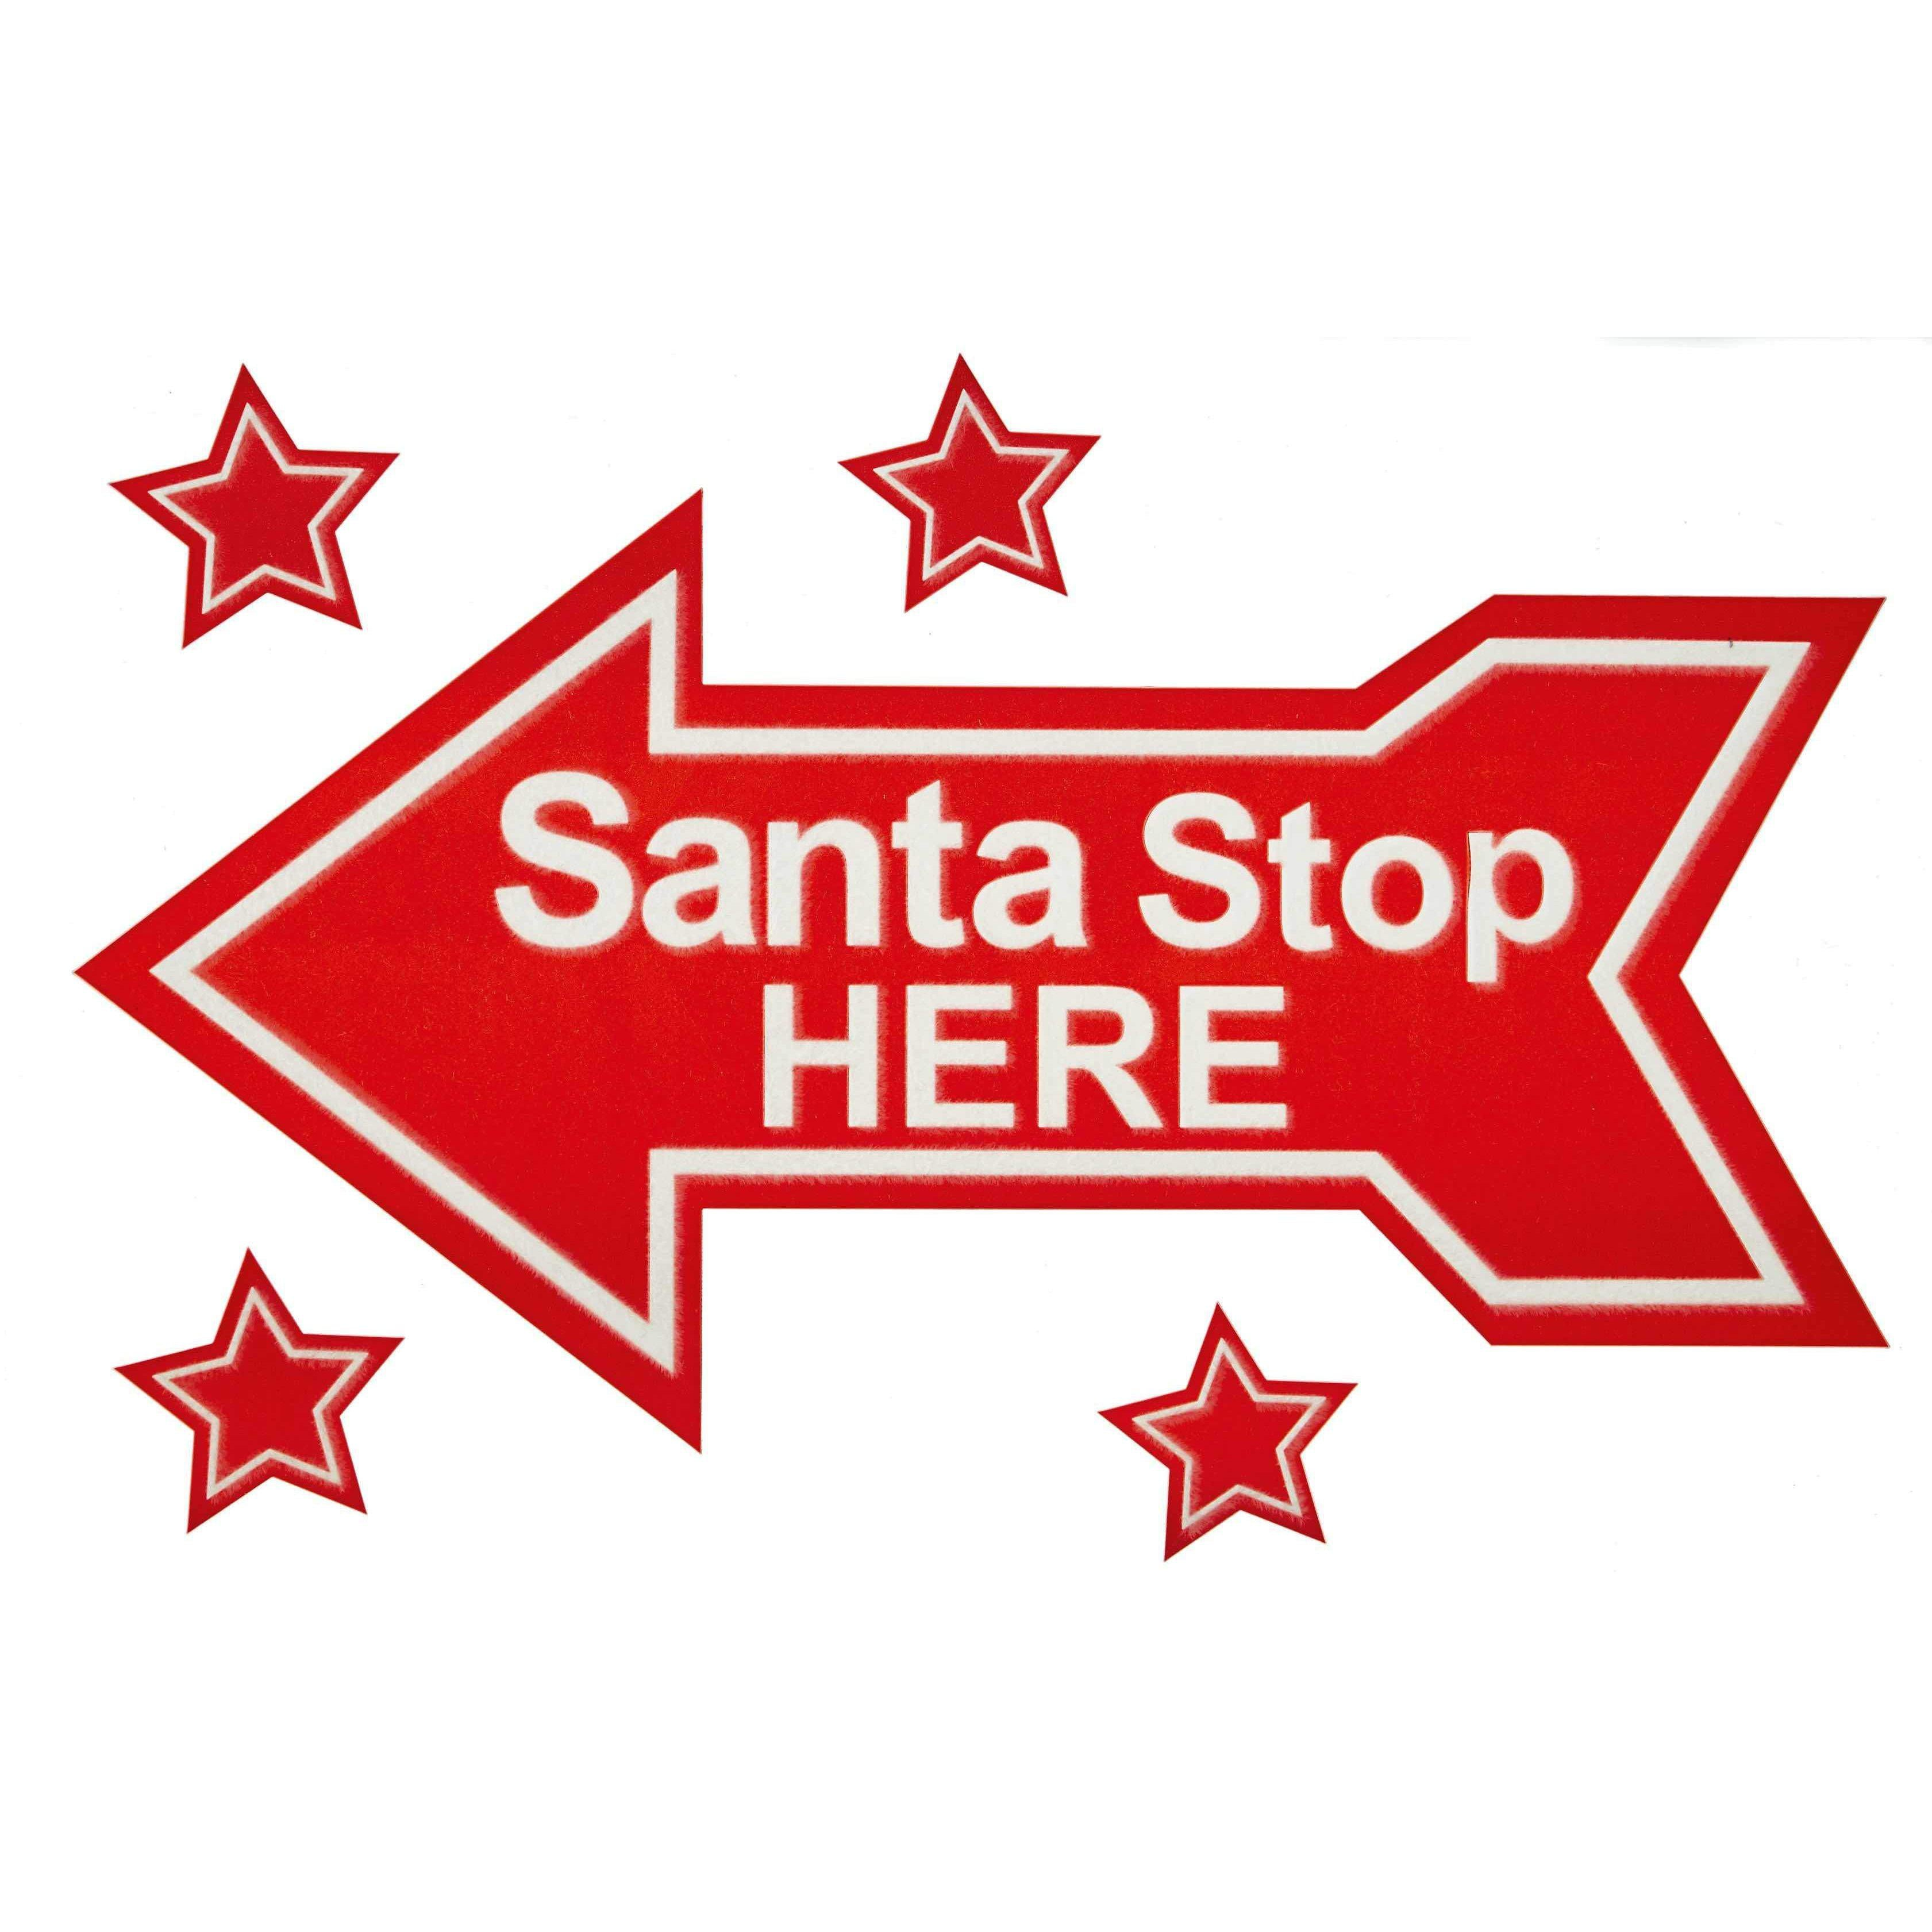 Santa Stop Here Window Cling